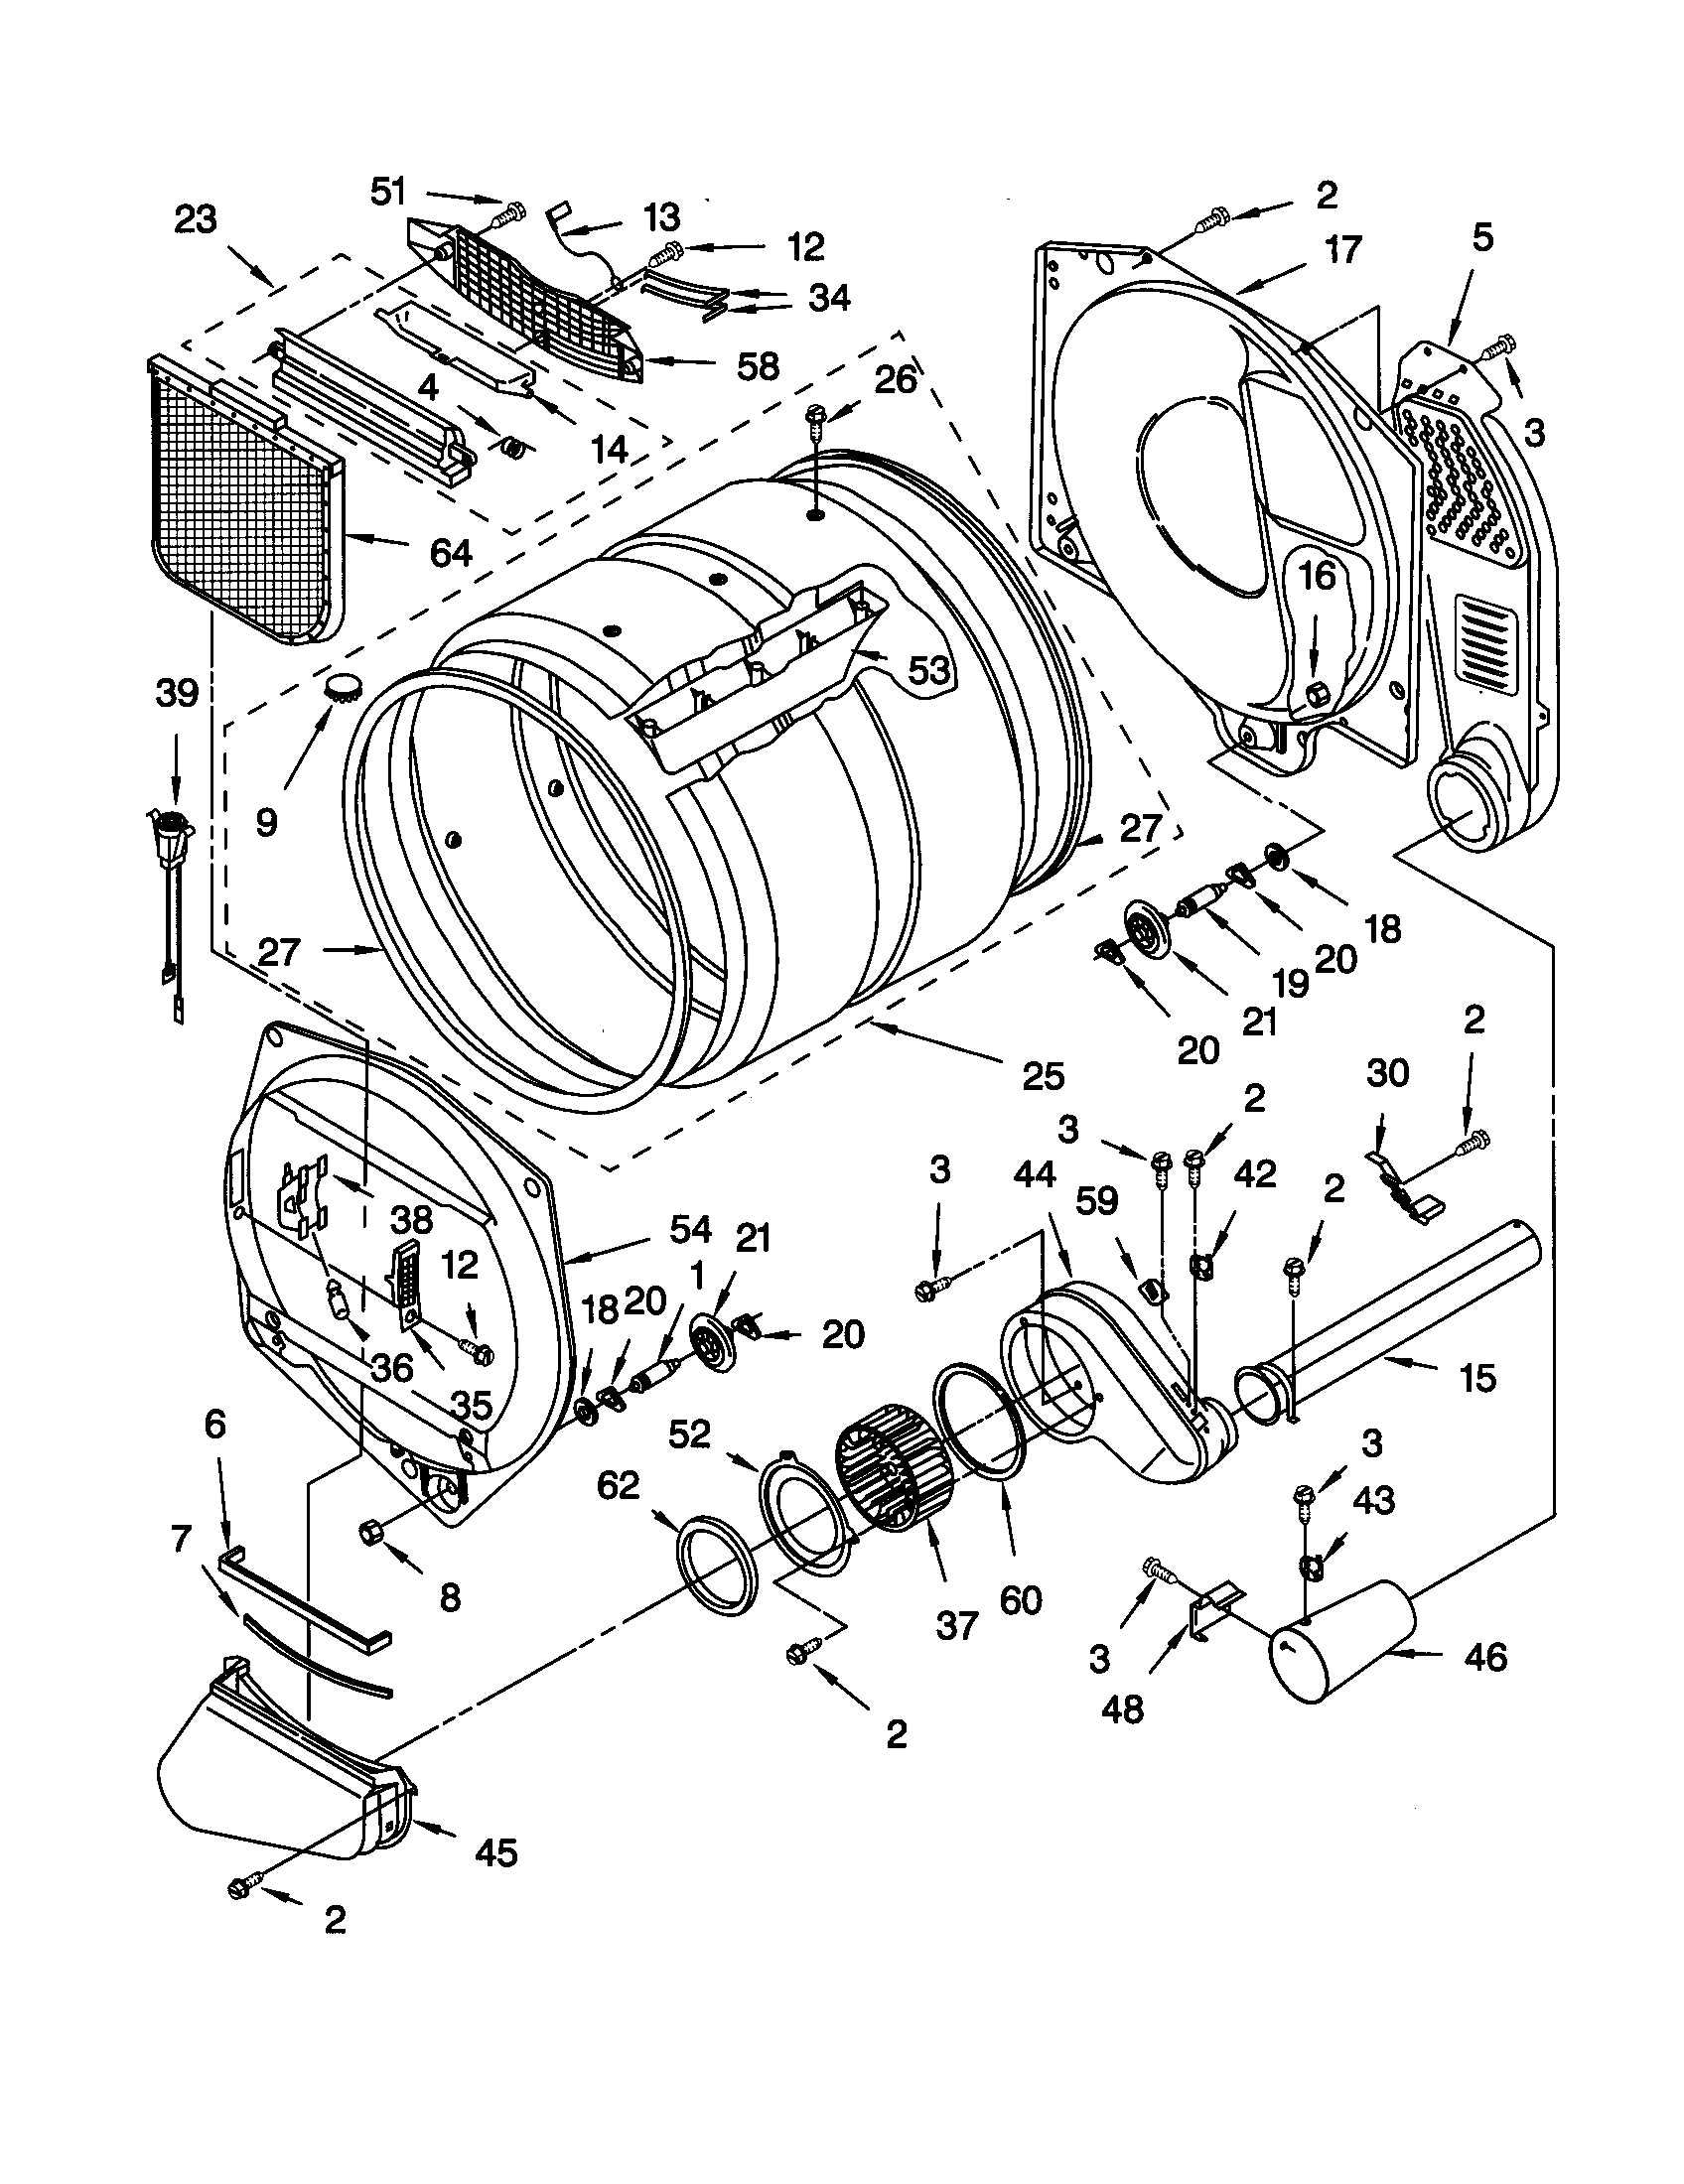 Kenmore dryer diagram | Made in 2019 | Gas dryer, Kenmore ... on gas dryer schematic, ge washer wiring schematic, whirlpool dishwasher wiring schematic, kenmore 90 series dryer schematic, ge dishwasher wiring schematic, refrigerator wiring schematic, kenmore model 110 diagram, kenmore elite dryer schematic, maytag washer wiring schematic, kenmore 110 dryer schematic, kenmore dryers manuals 110, kenmore 110 dryer wiring, kenmore dryer heating schematic, kenmore dryer electrical wiring, whirlpool dryer electrical schematic,